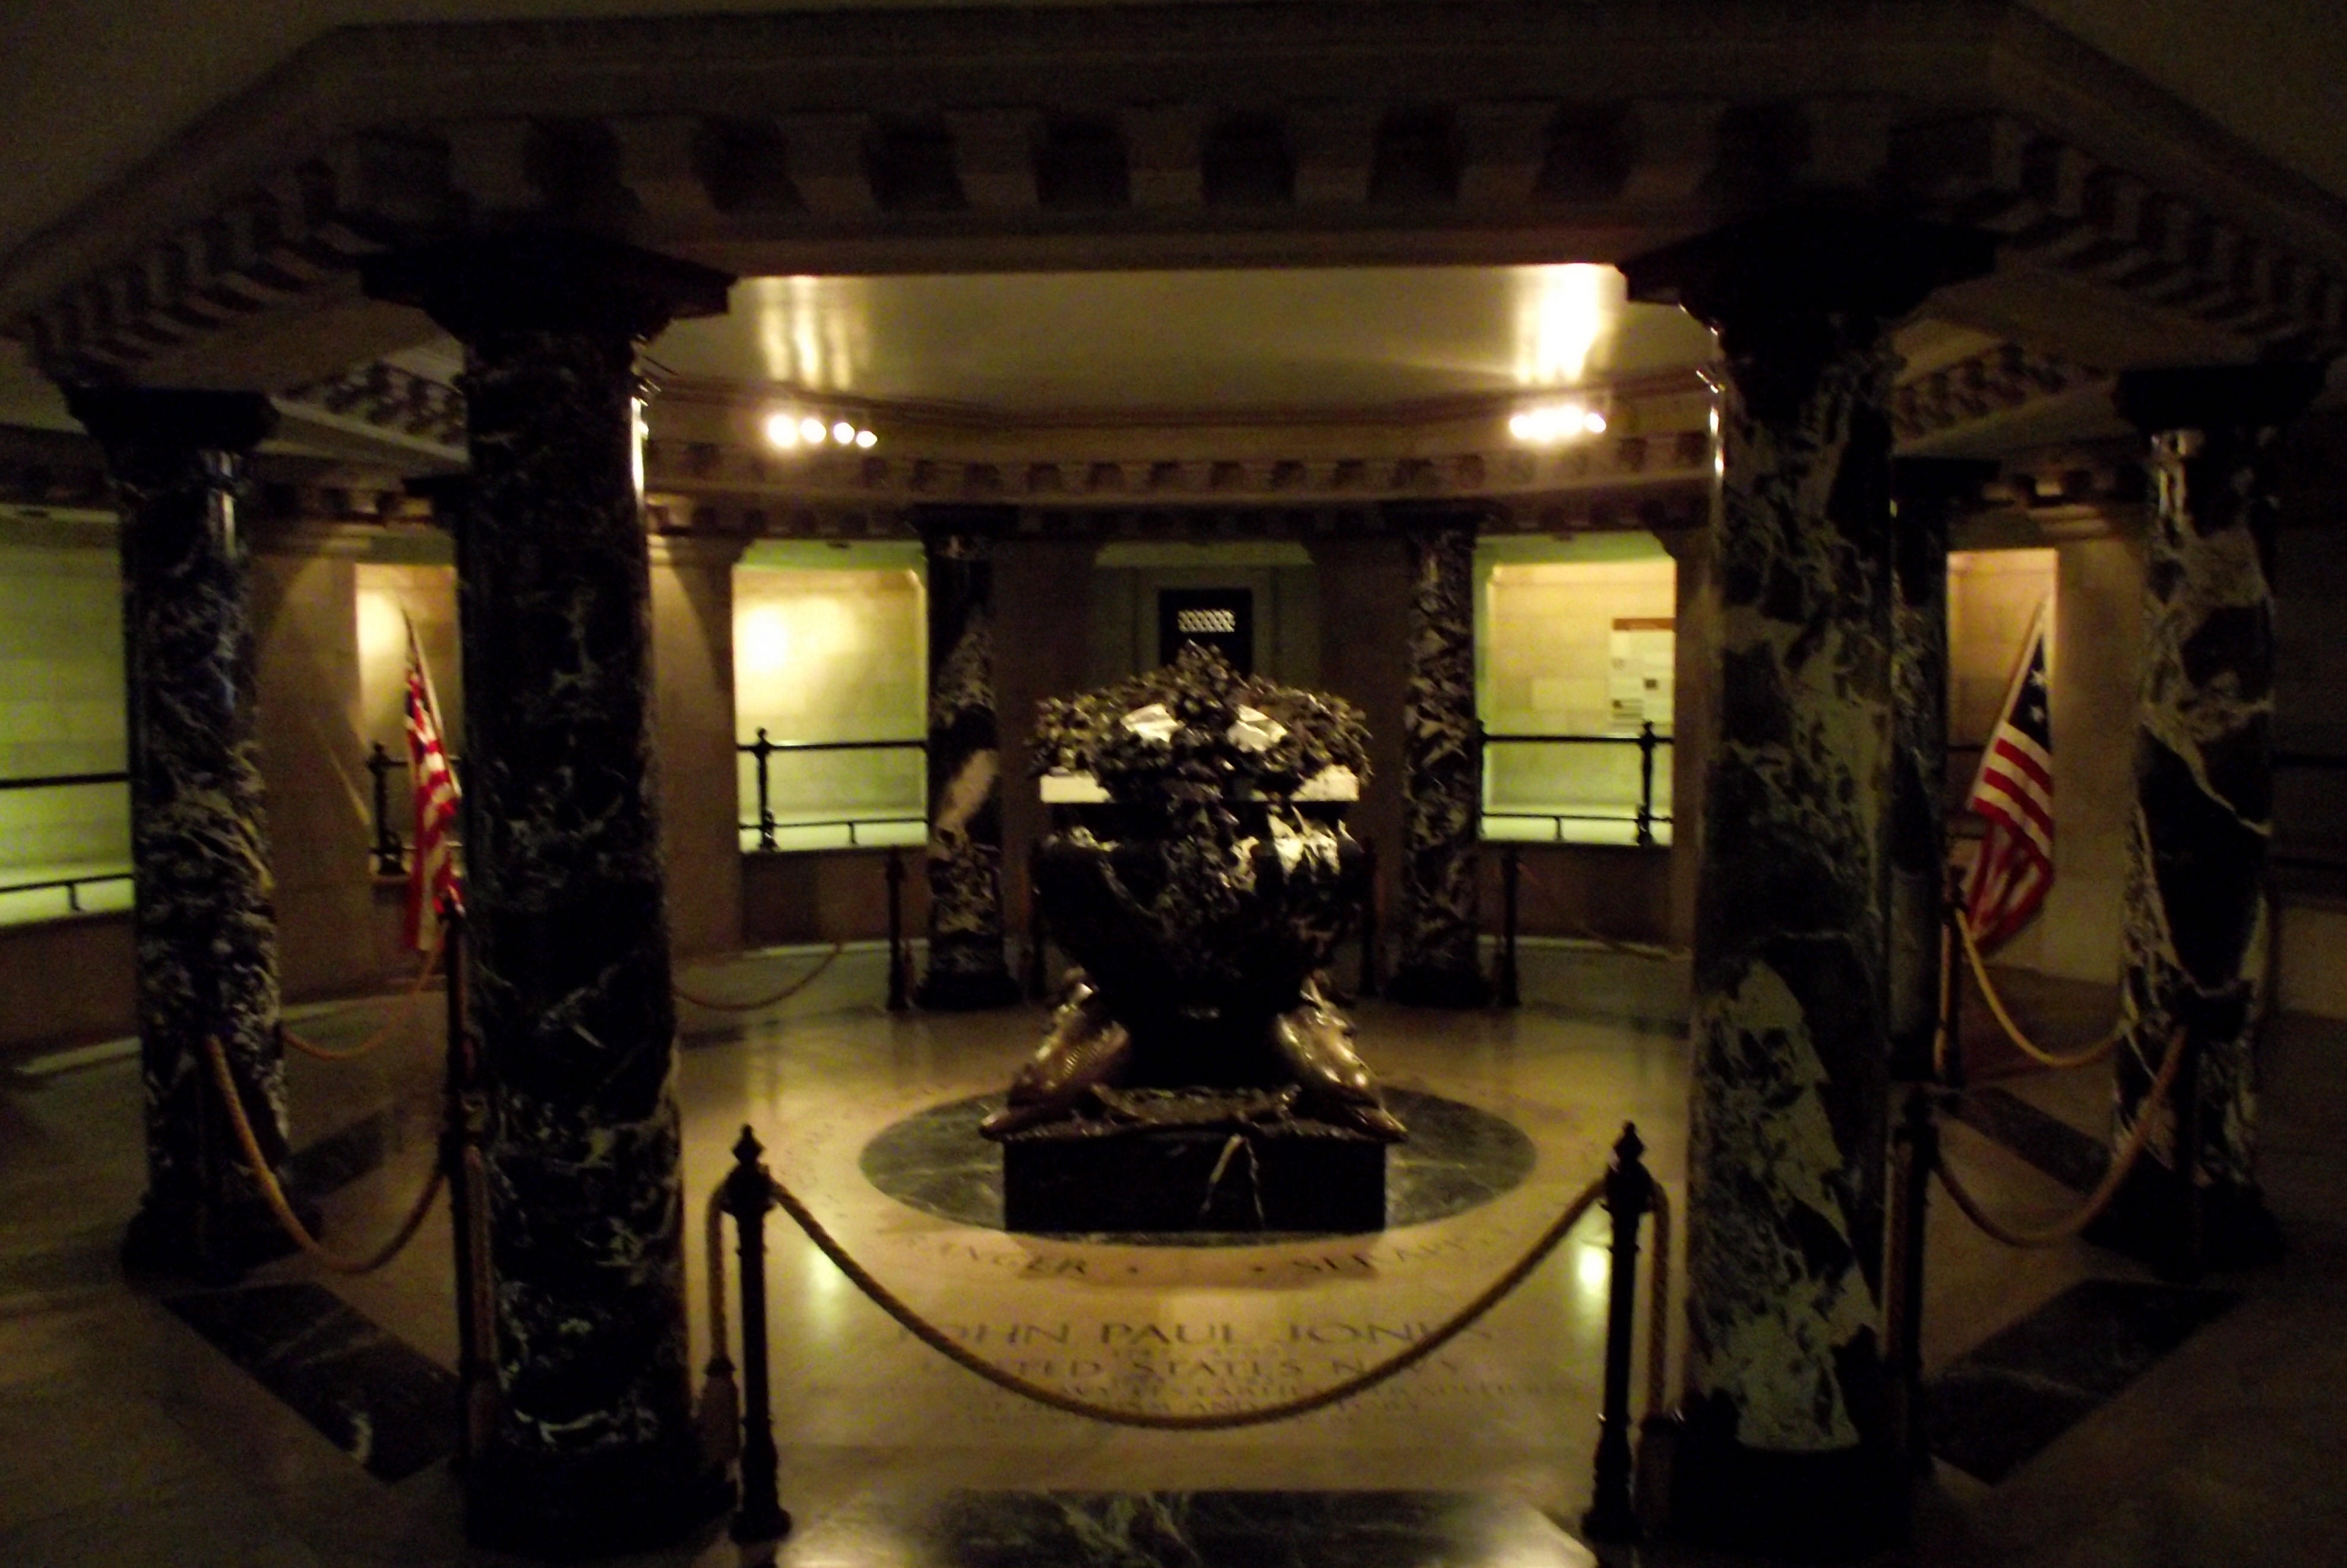 crypt of john paul jones chaplain s center usna